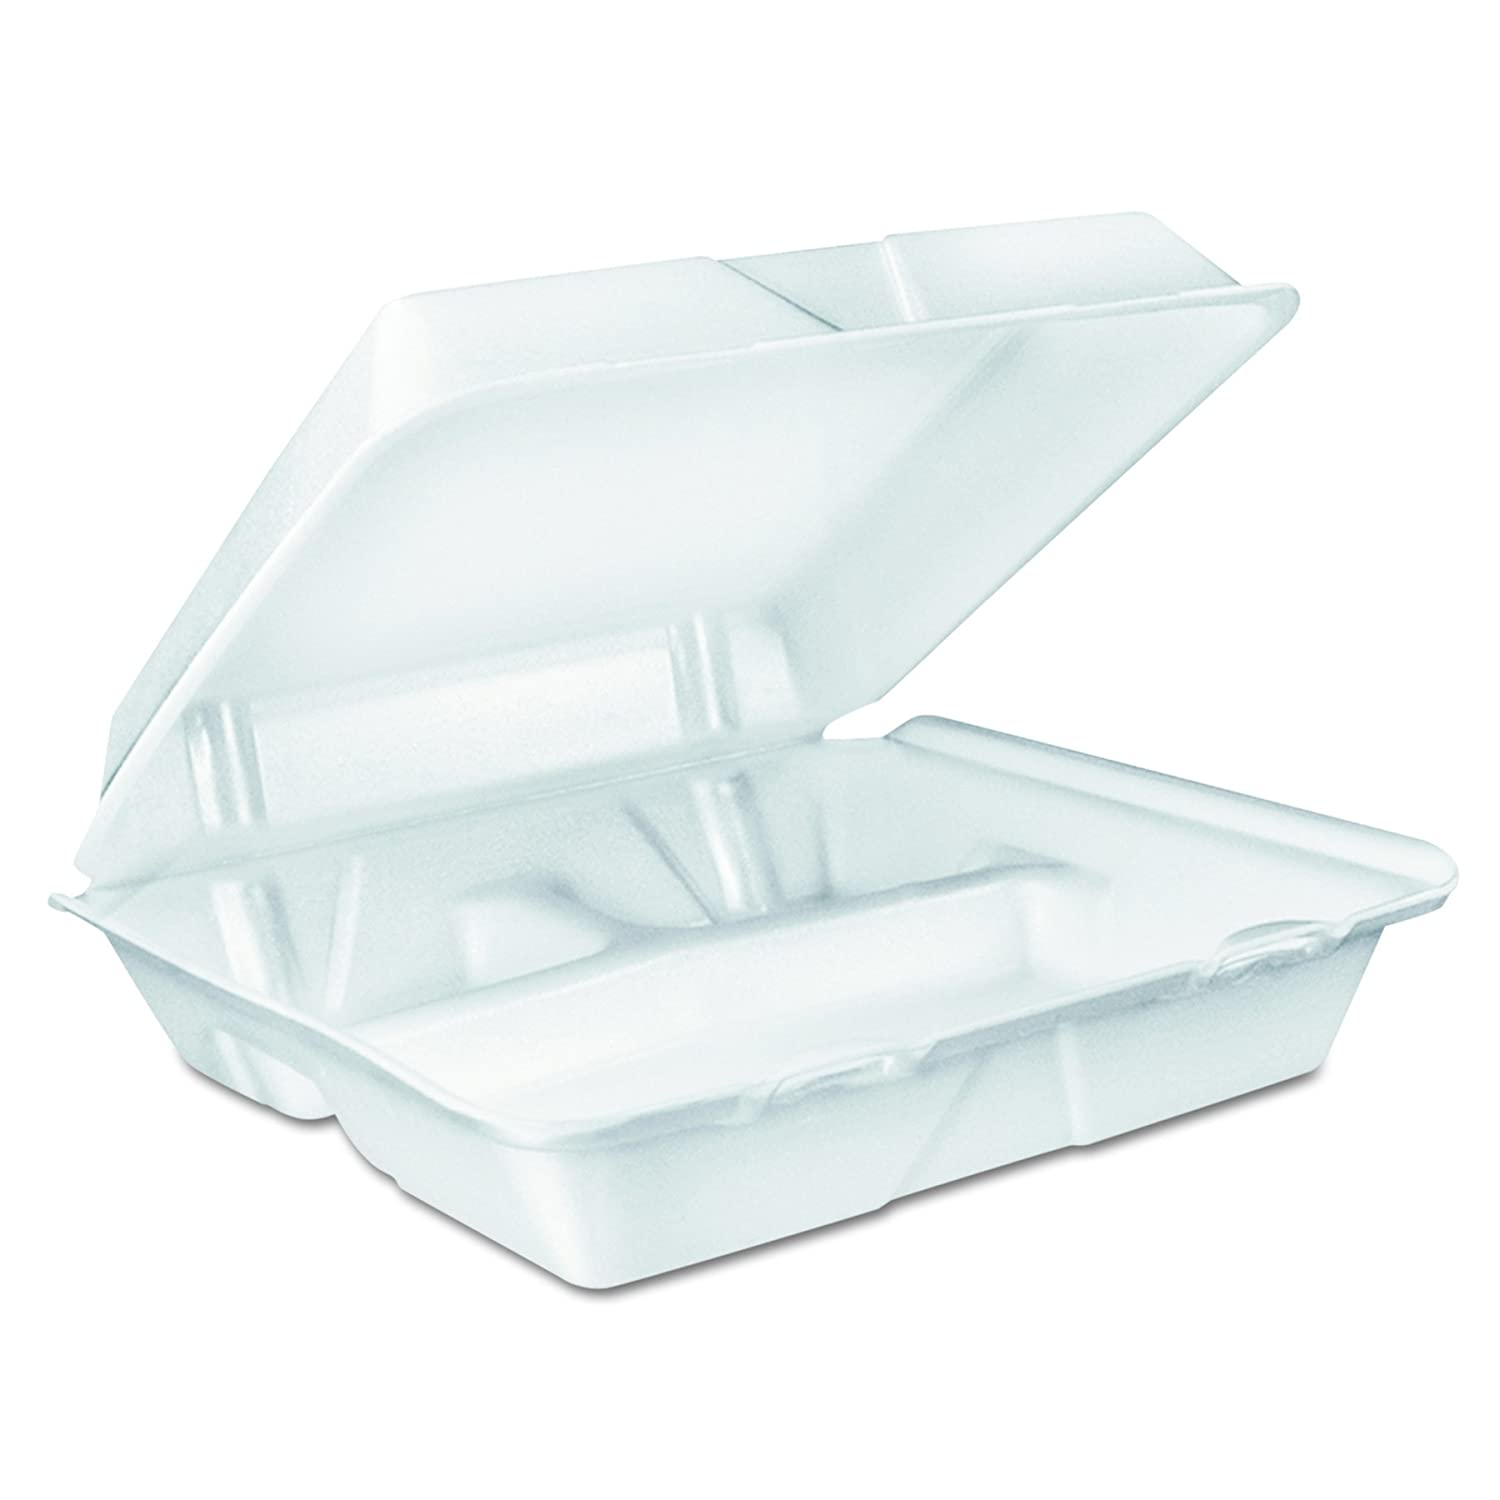 Dart 90HT3R Large Foam Carryout, Food Container, 3-Compartment, White, 9-2/5x9x3 (Case of 200)